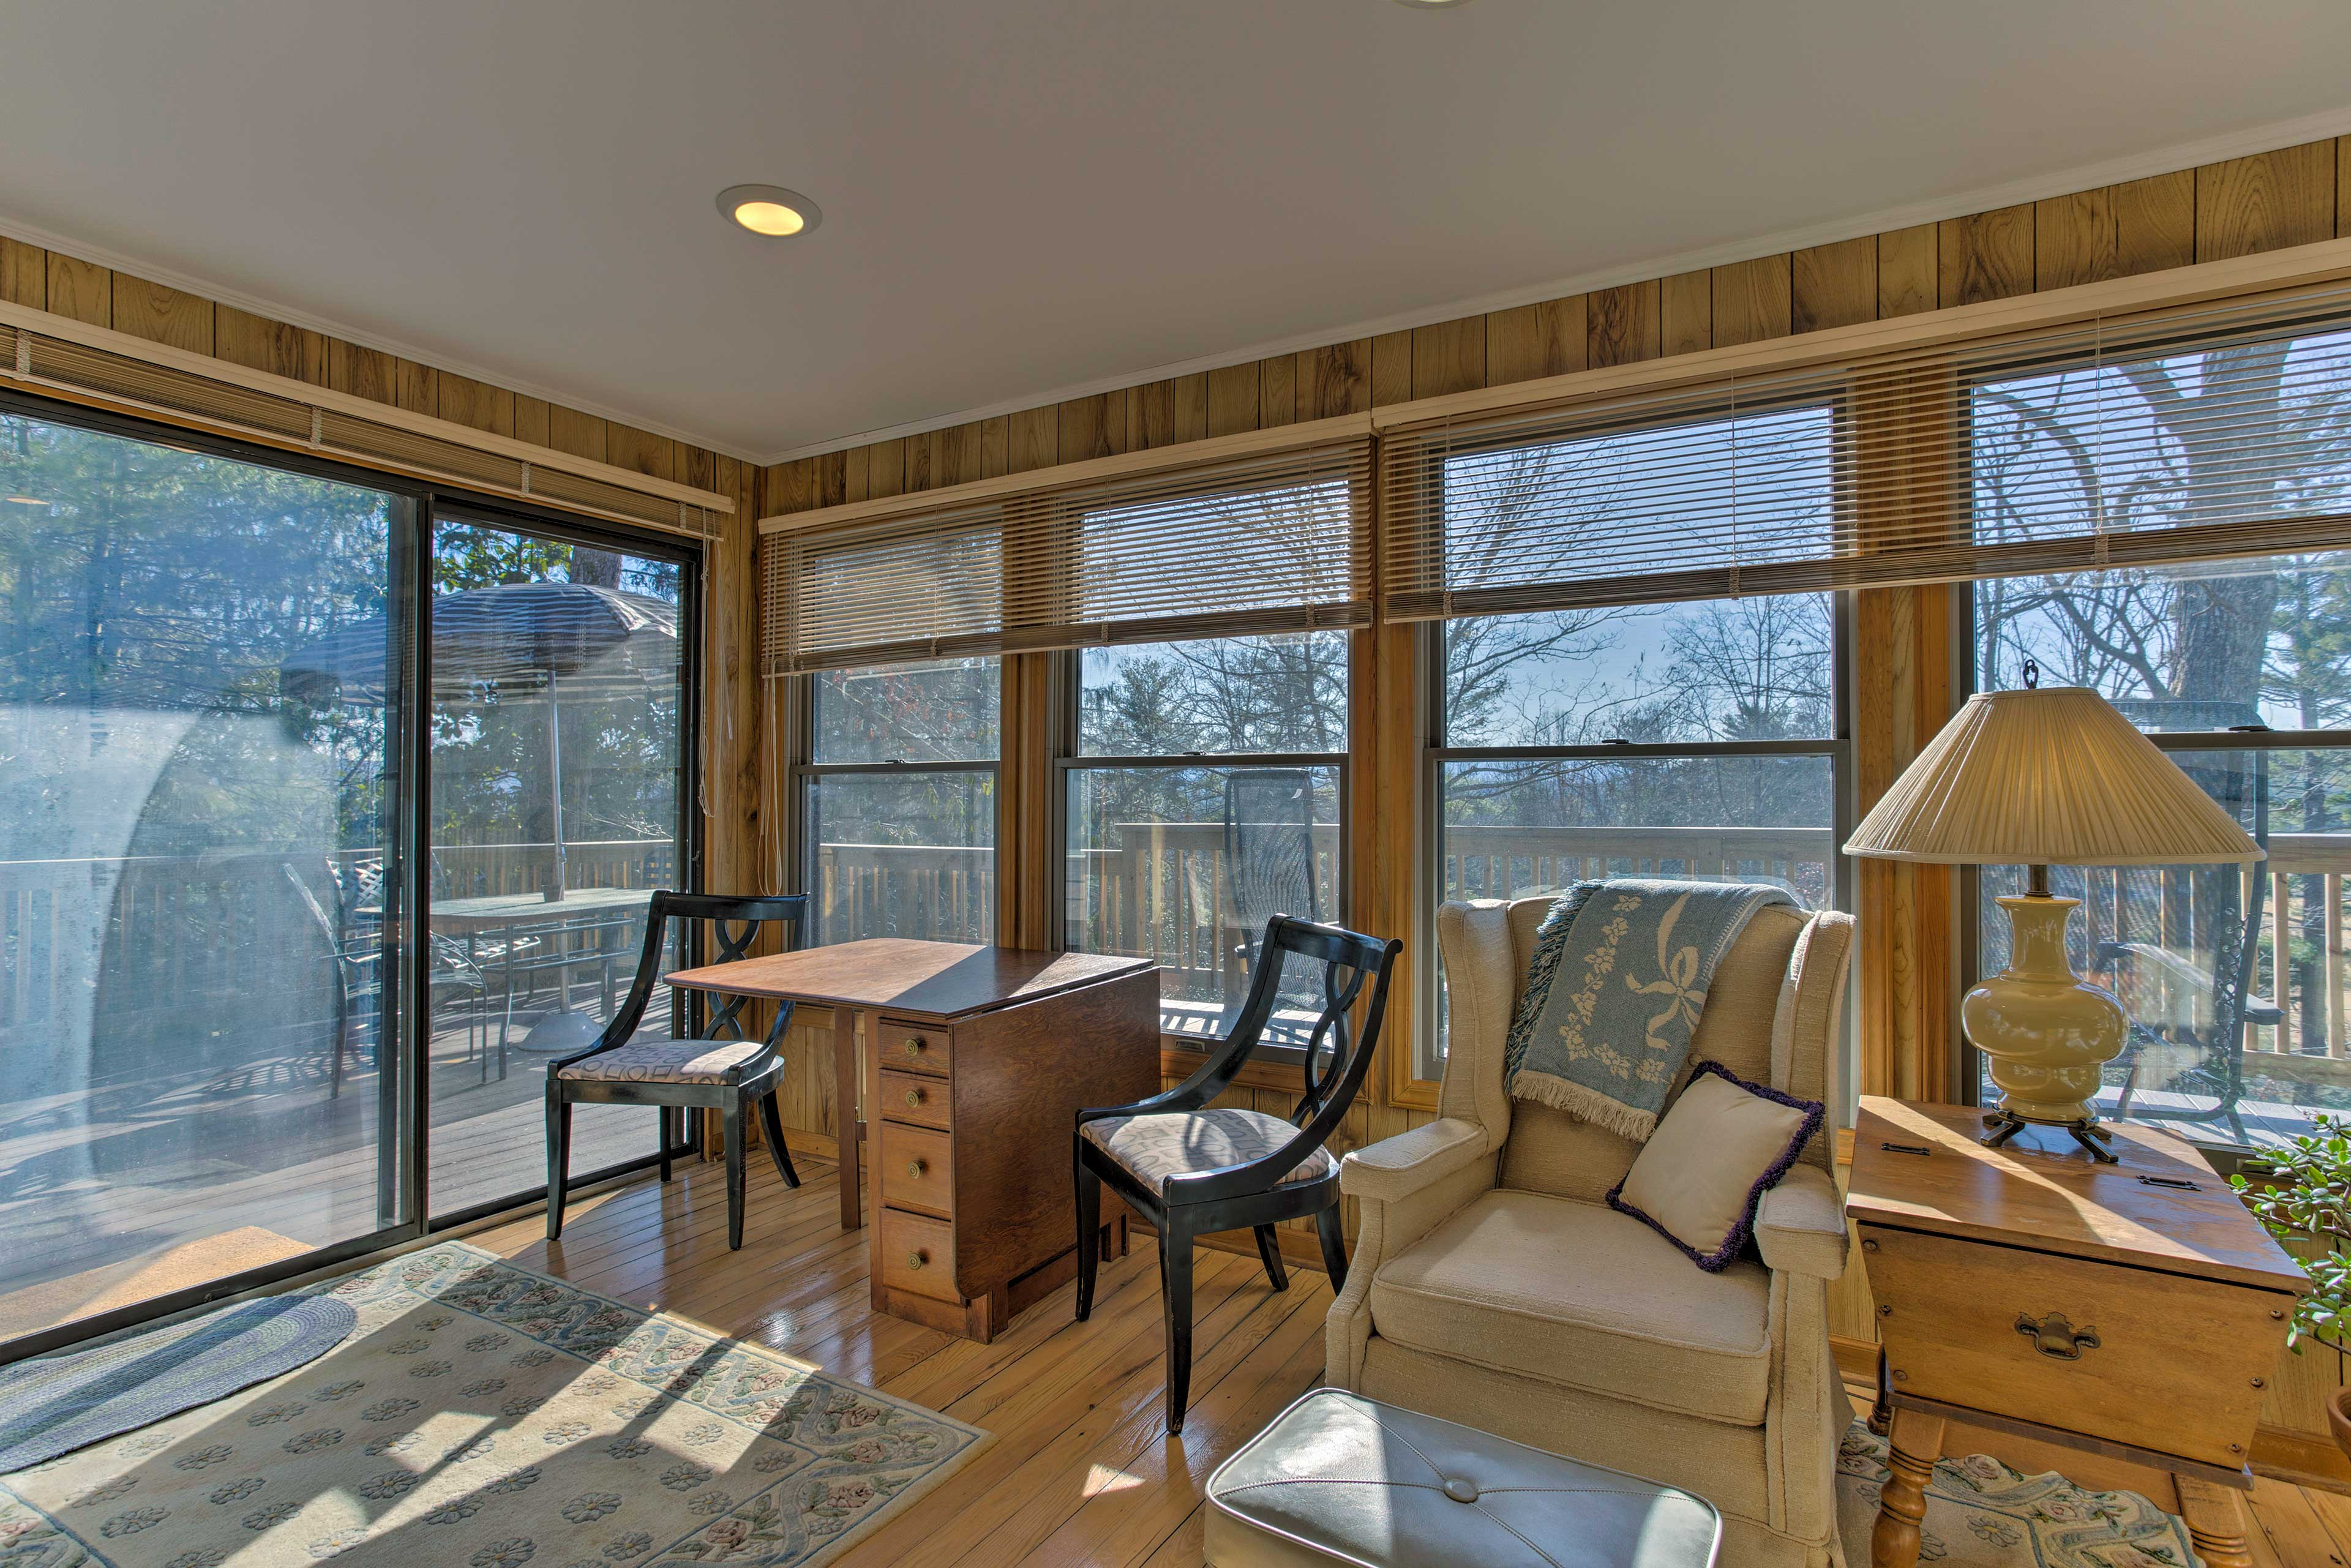 Large windows fill the home with warm, natural light.